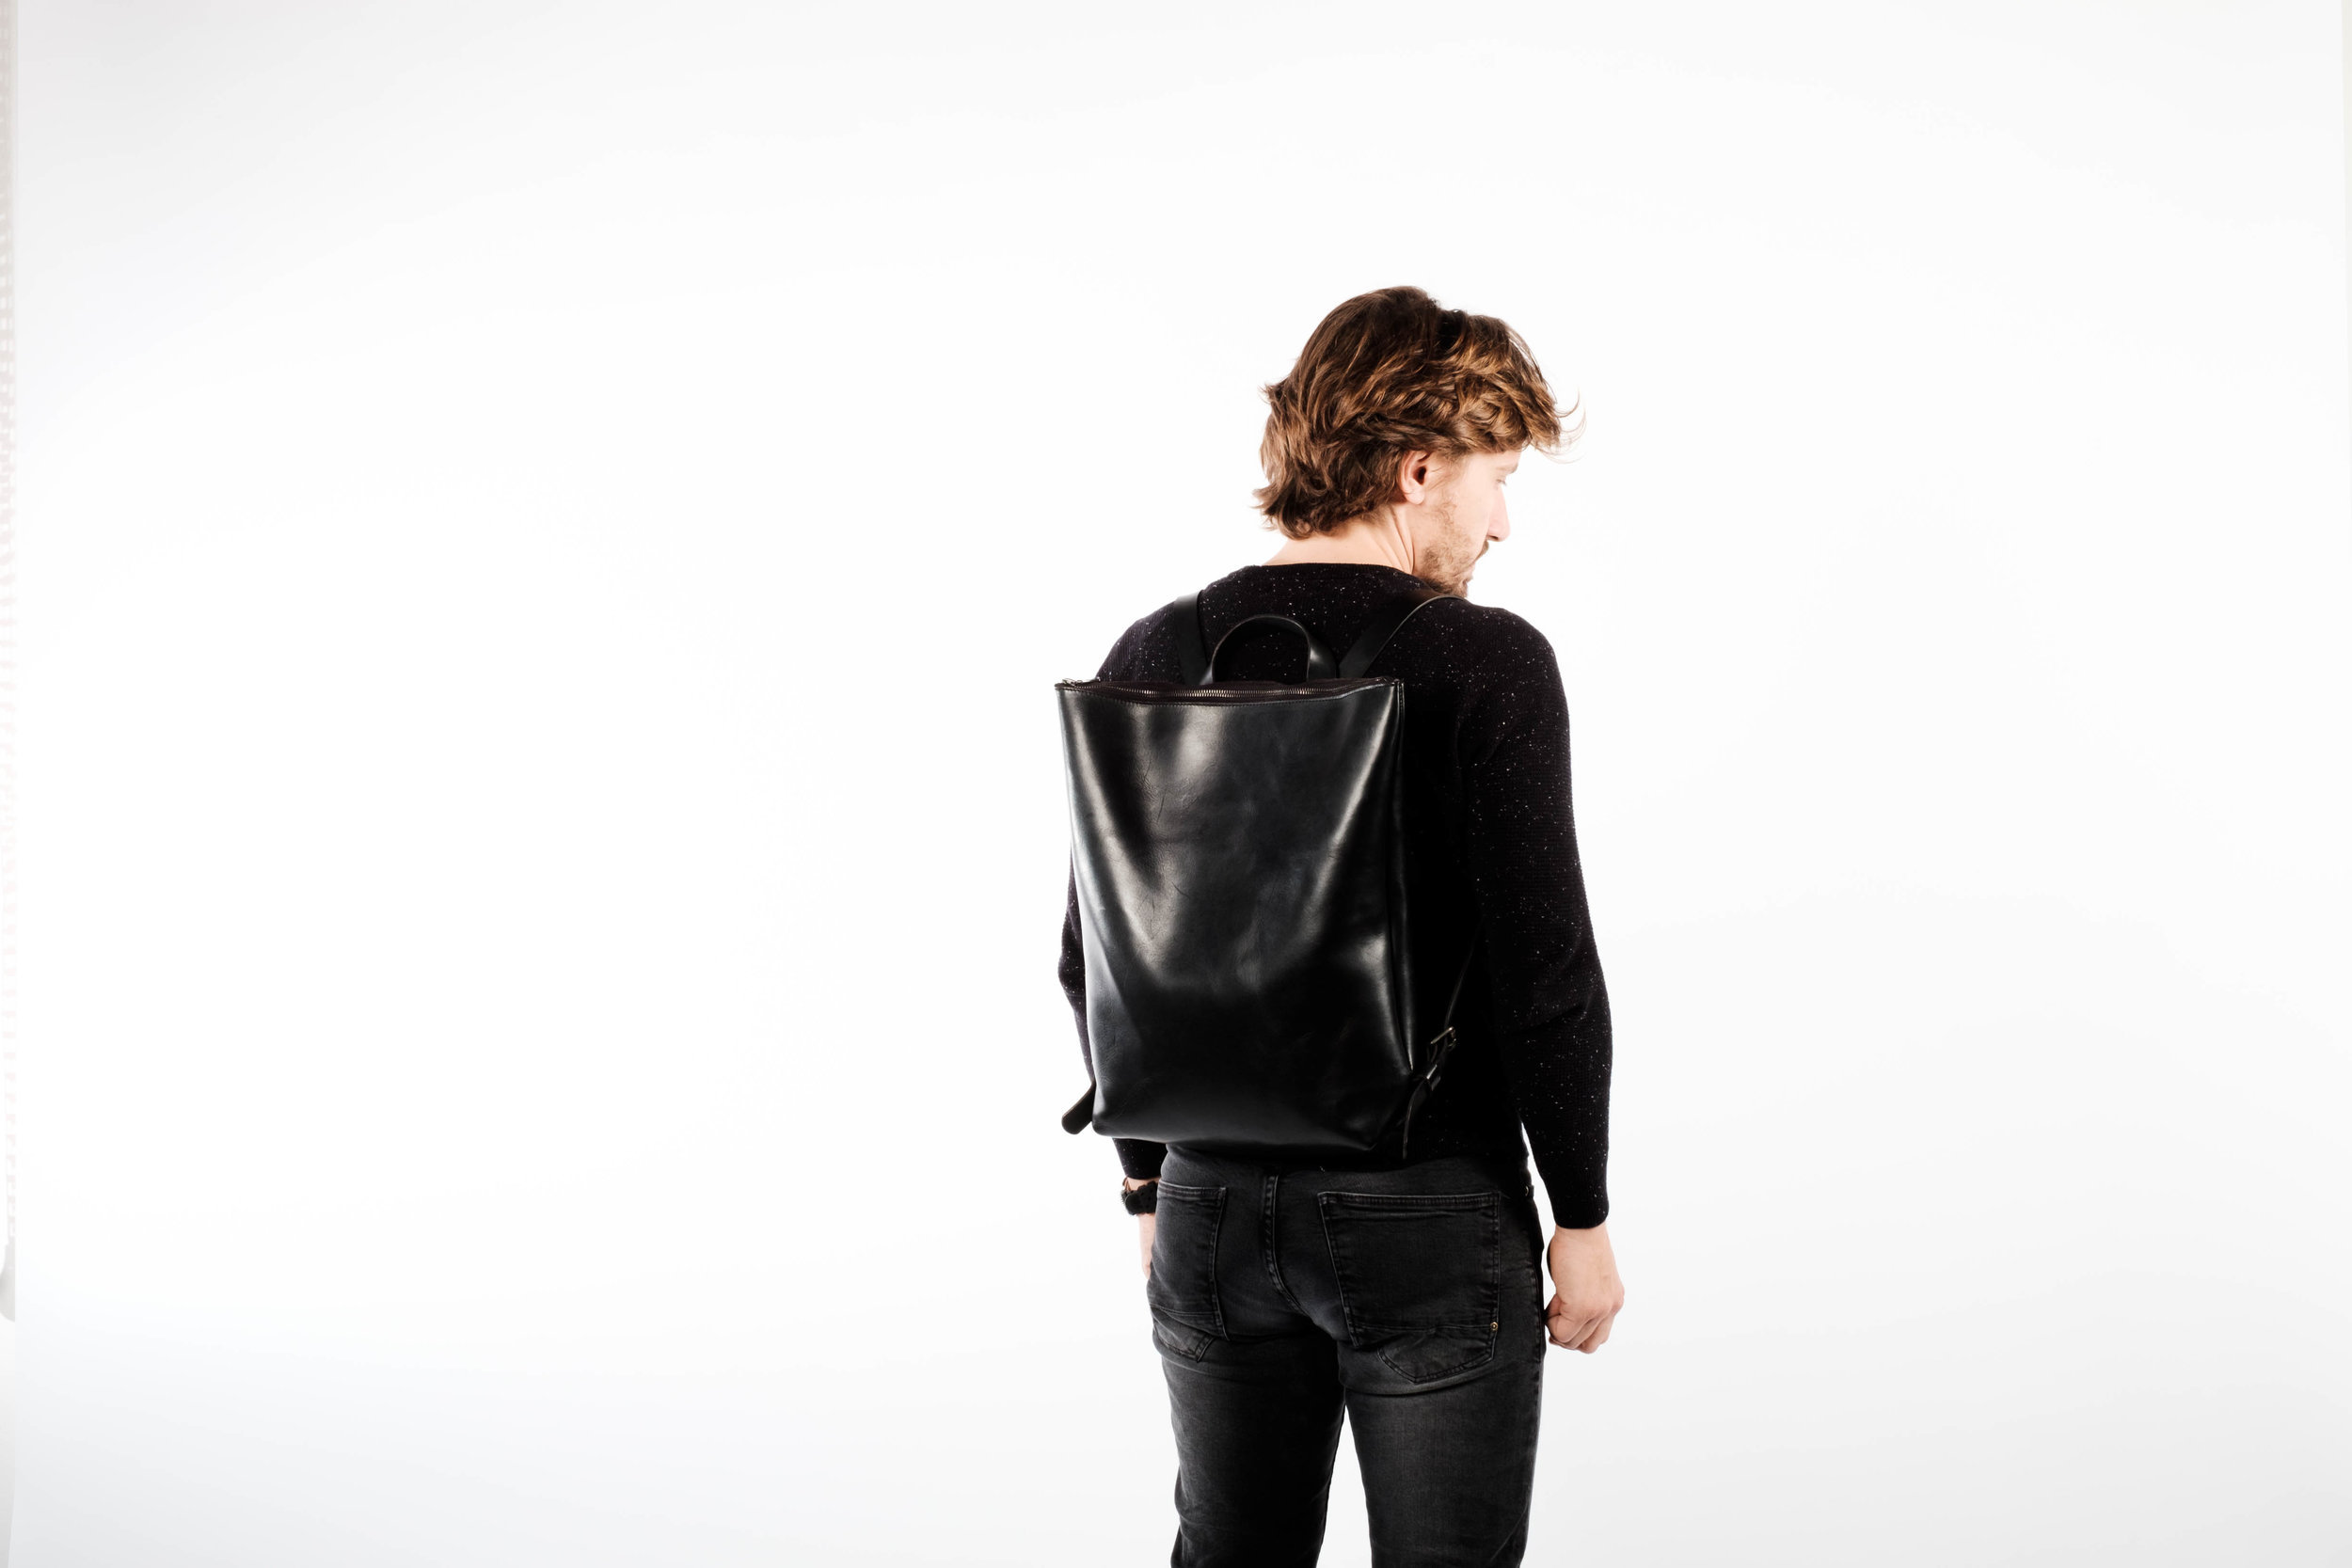 NO.02 is a minimalistic top-zip backpack with a top handle and an additional organizer on the inside of the bag. It is made of 1.8 mm smooth vegetable tanned leather with 3.5 mm thick shoulder straps.  It features nickle roller buckles on the side, swiss-made RIRI zip closure in gunmetal black and solid cast copper rivets that are hand forged to connect the straps to the bag. The cut edges of the leather are carefully rounded off and hand polished with beeswax to smooth finish.